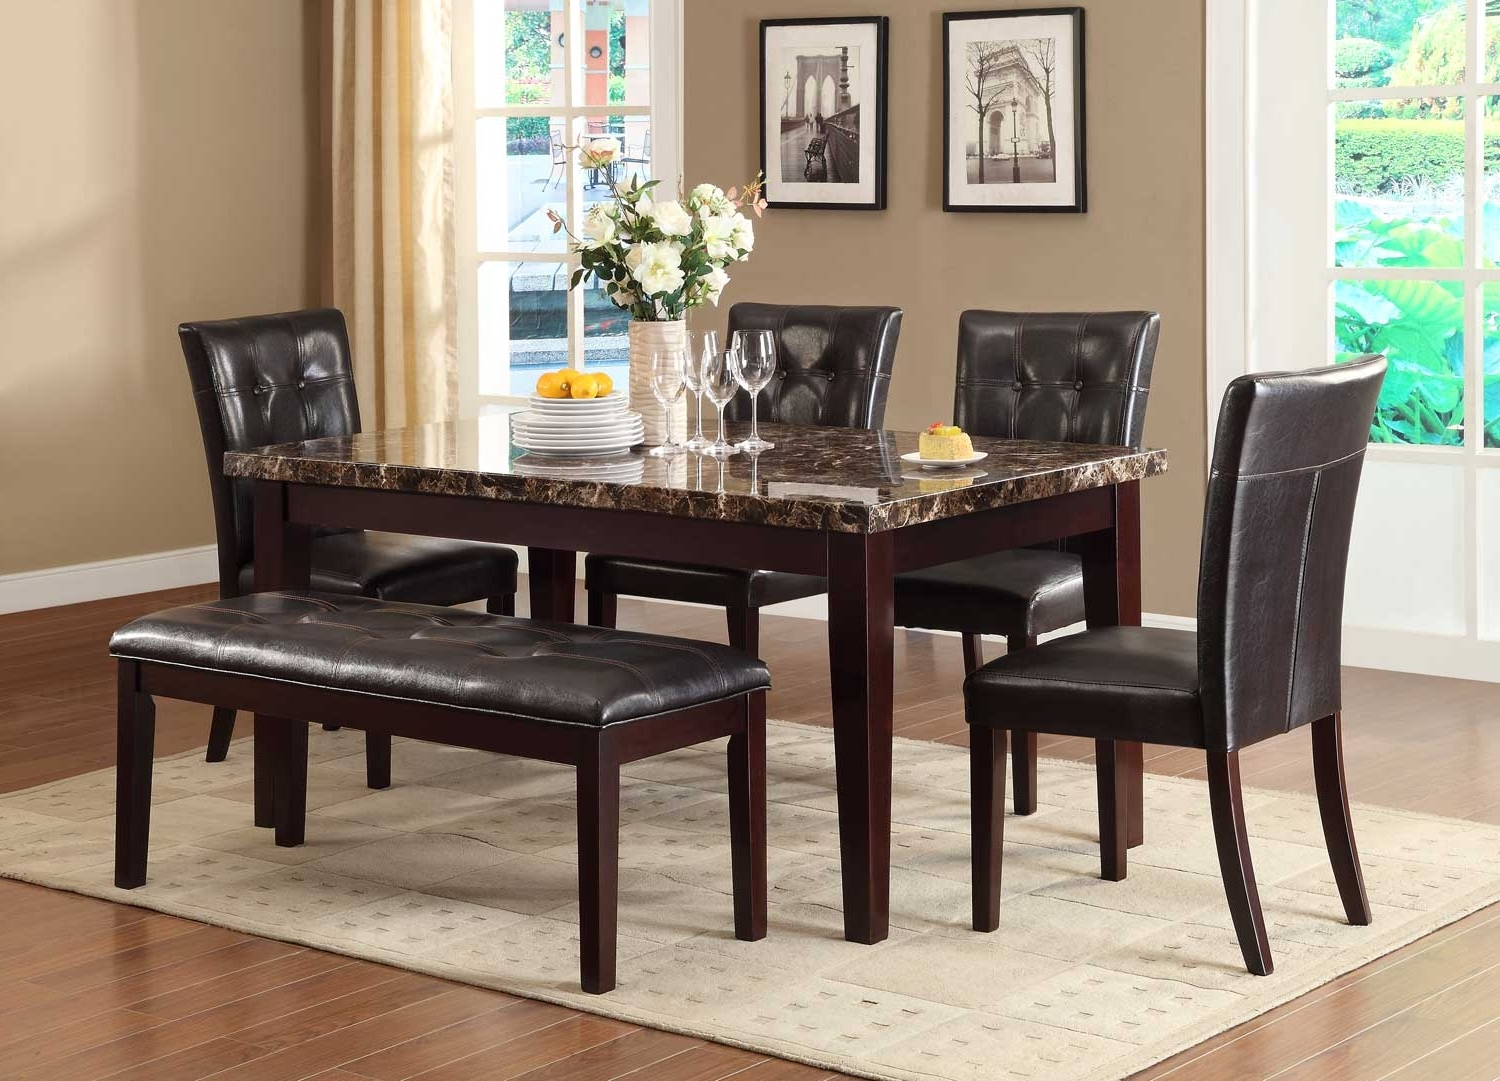 Homelegance Teague Faux Marble Dining Set - Espresso D2544-64 regarding Trendy Marble Dining Chairs